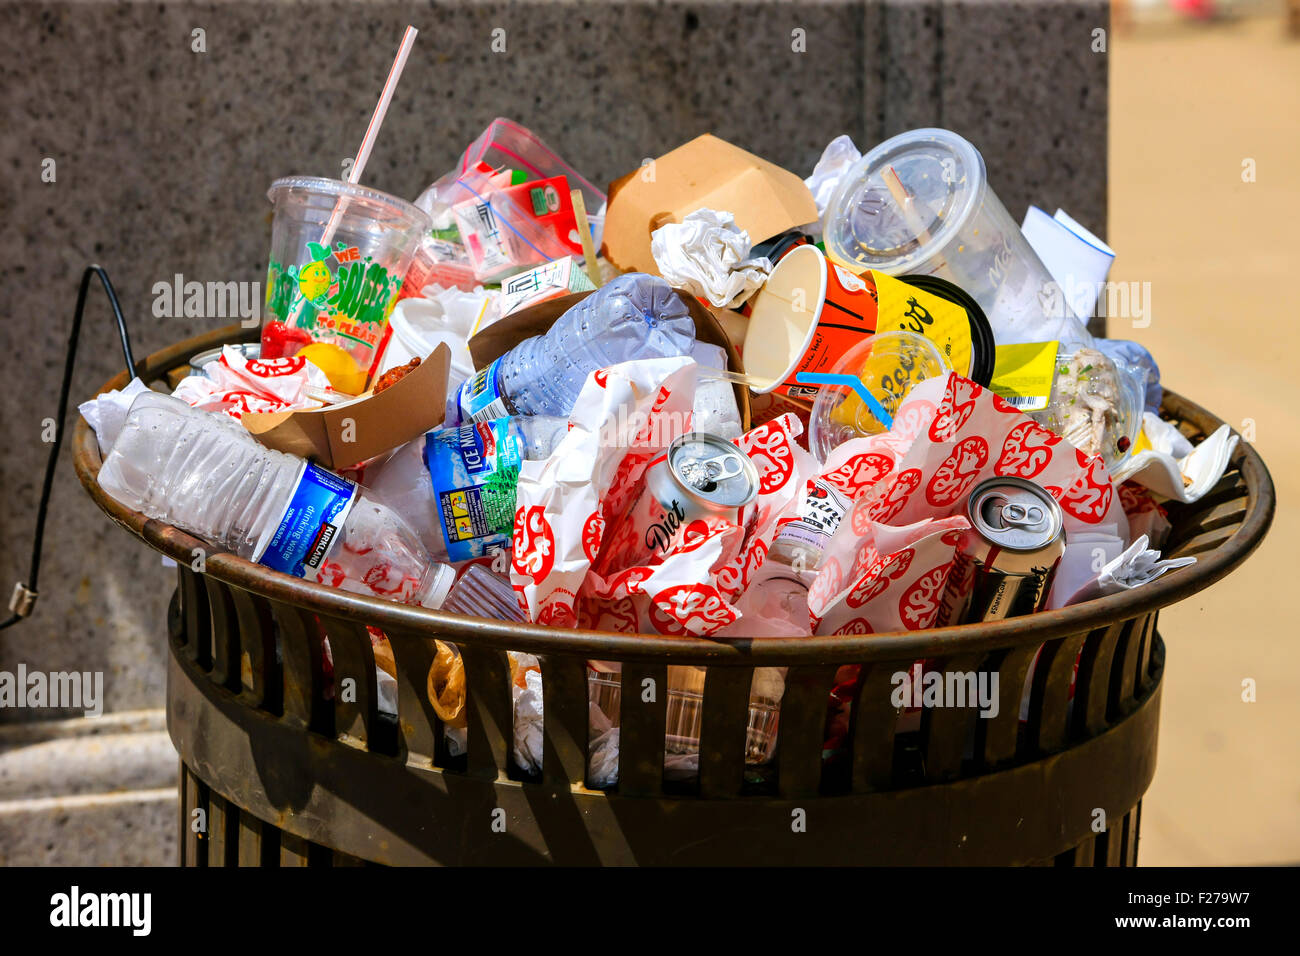 A trash can overflowing with empty drinks containers and food wrappers - Stock Image